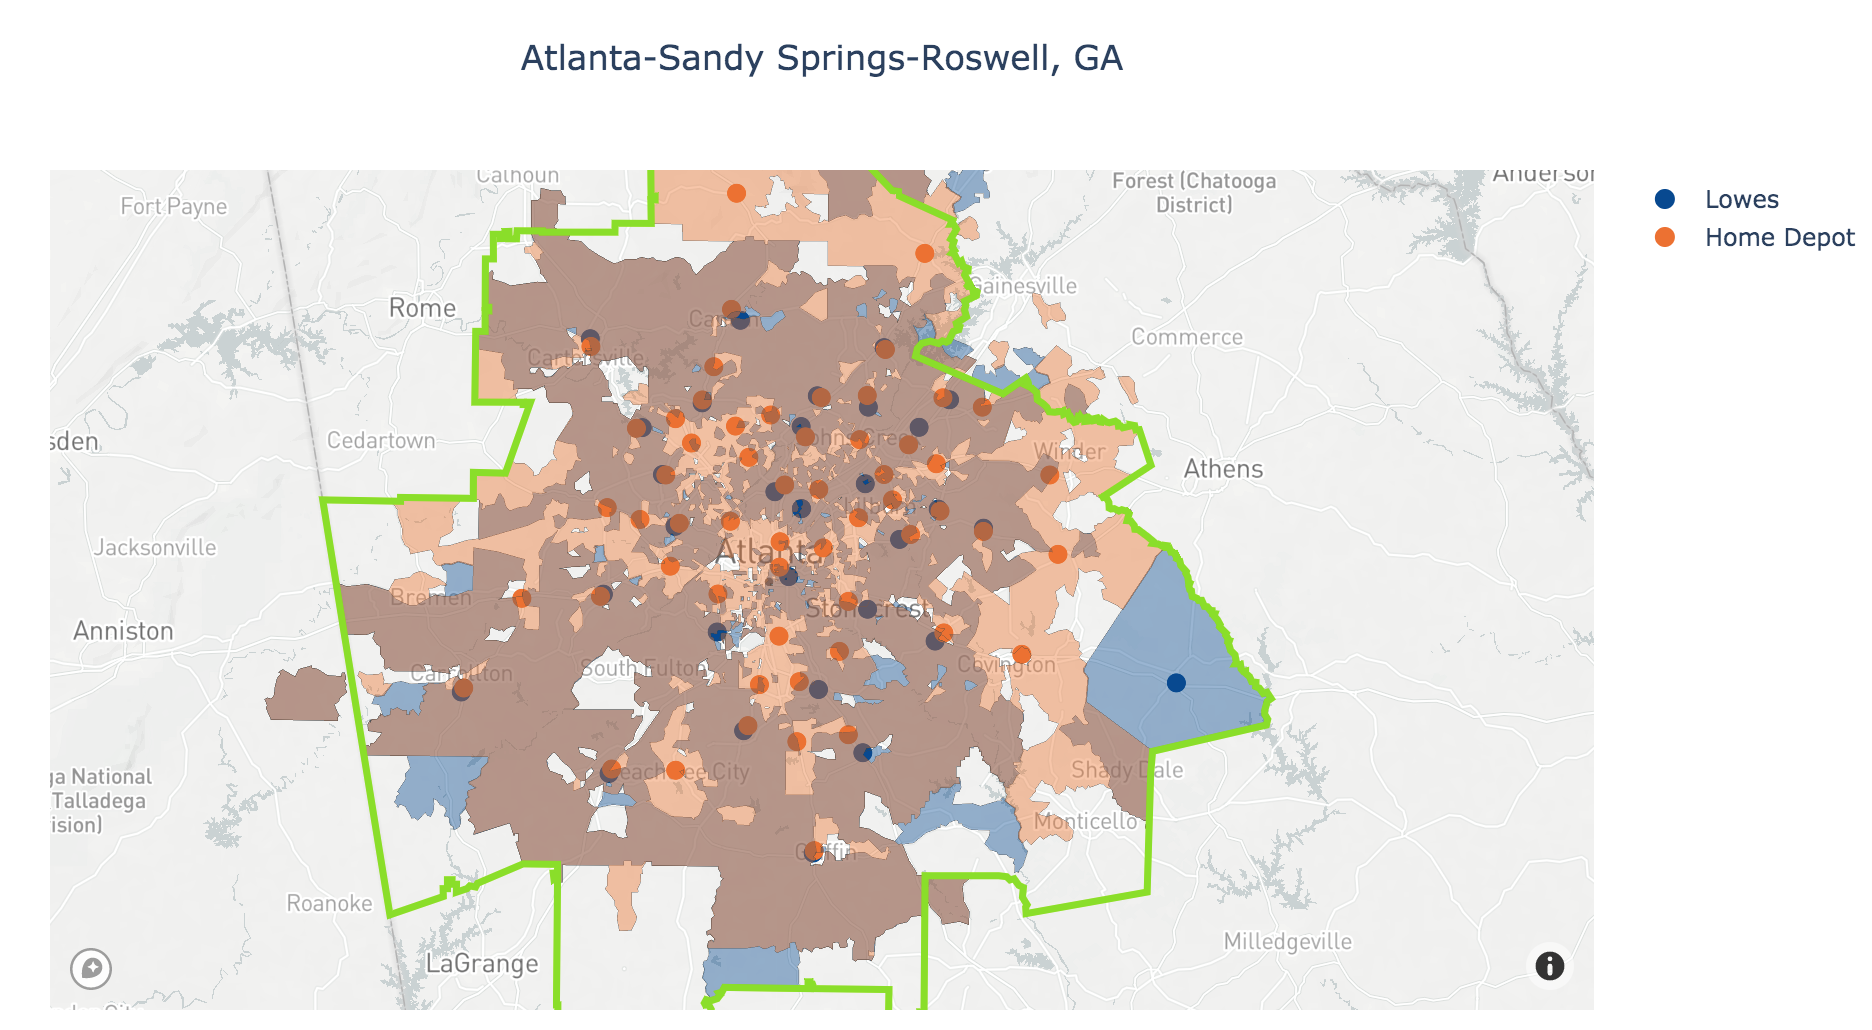 Home Depot and Lowes Trade Areas in Atlanta